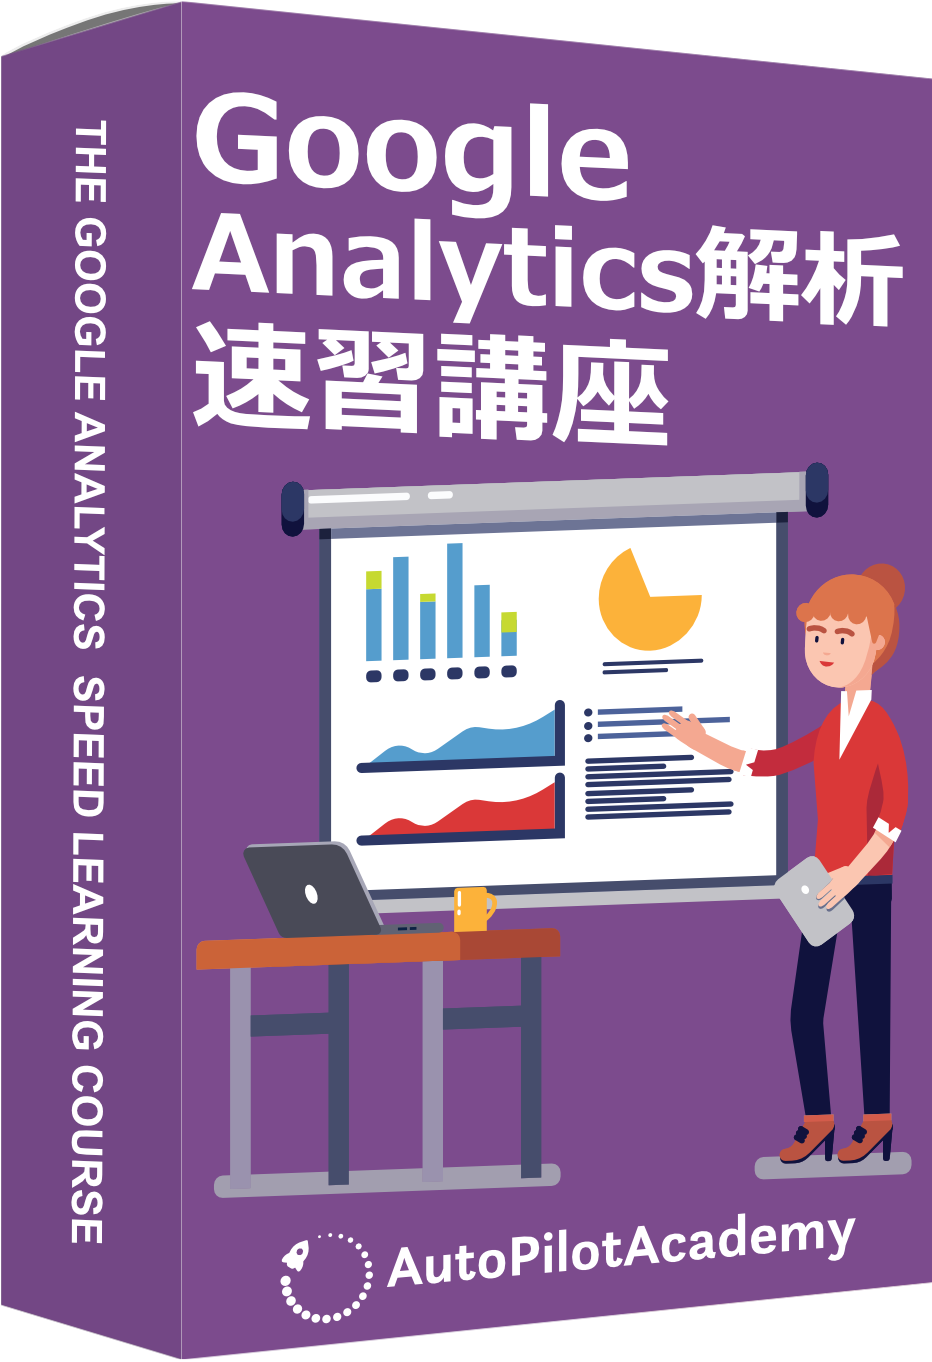 google-analytics-speed-learning-course